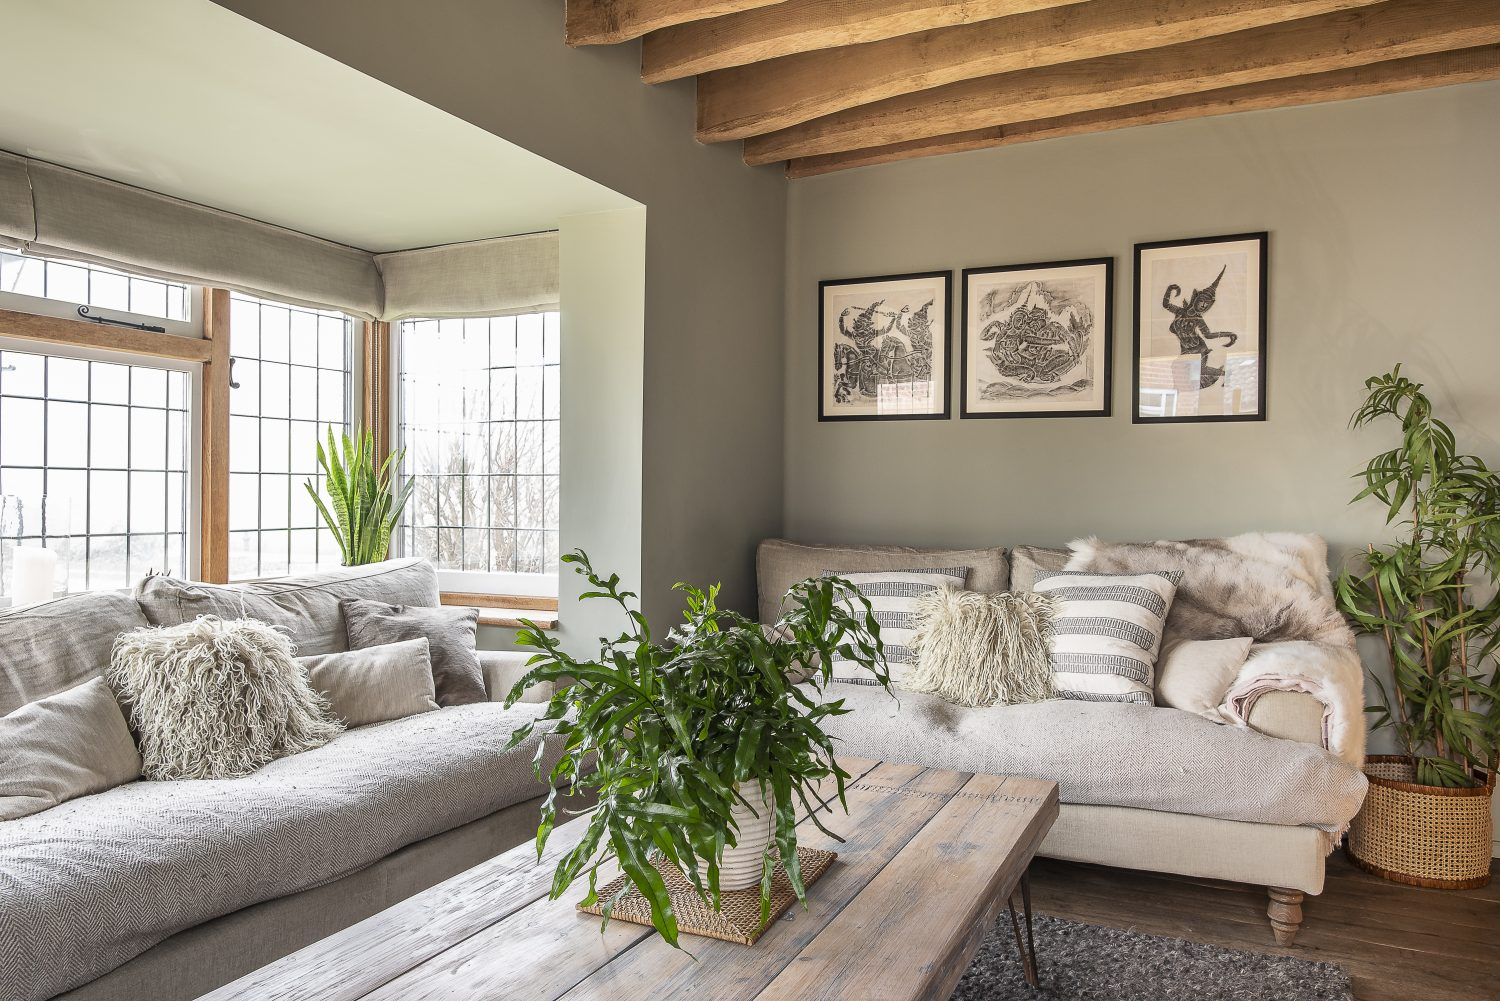 The house is filled with natural fabrics, coupled with indoor planting there's a strong sense of vitality throughout